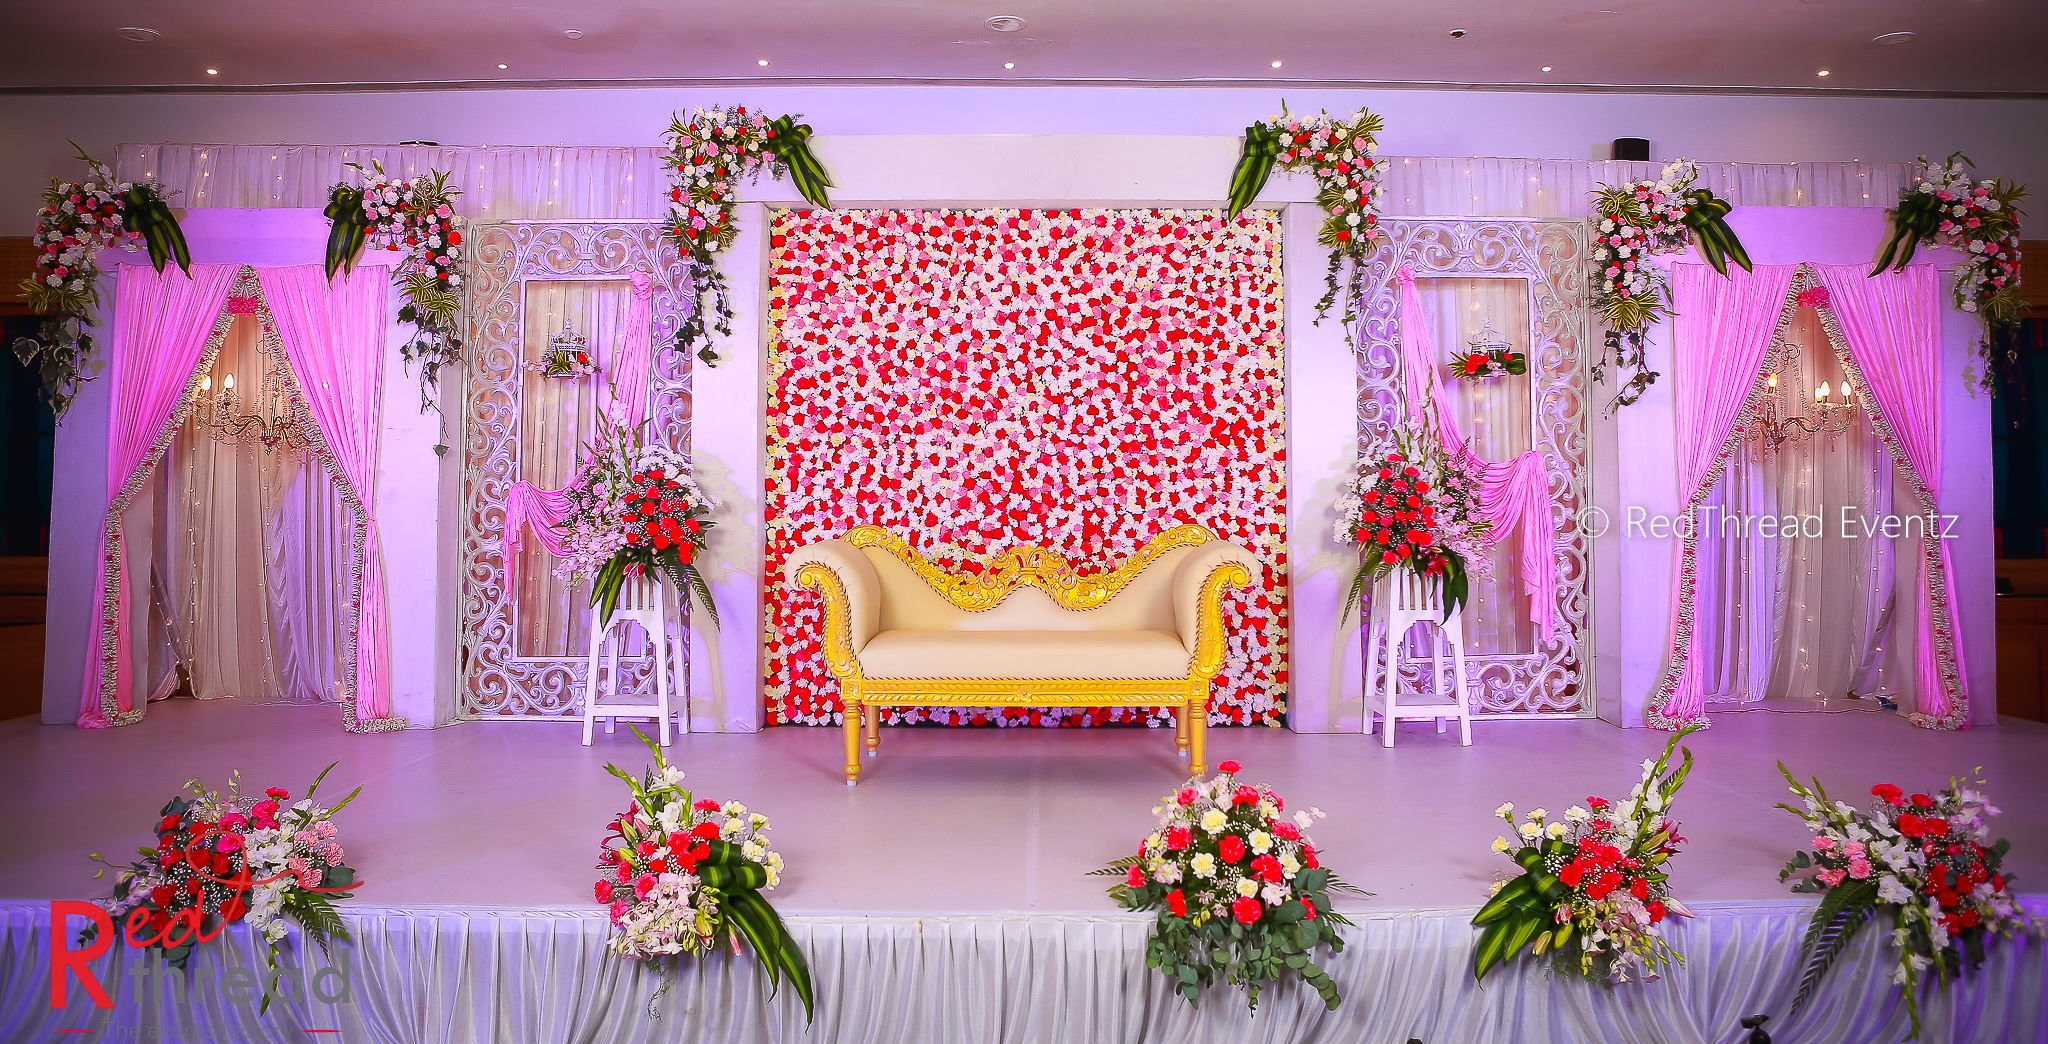 Get Inspired from thousands of photos of Latest wedding decor designs for your Dream Wedding, Ezwed covers real weddings and reviews